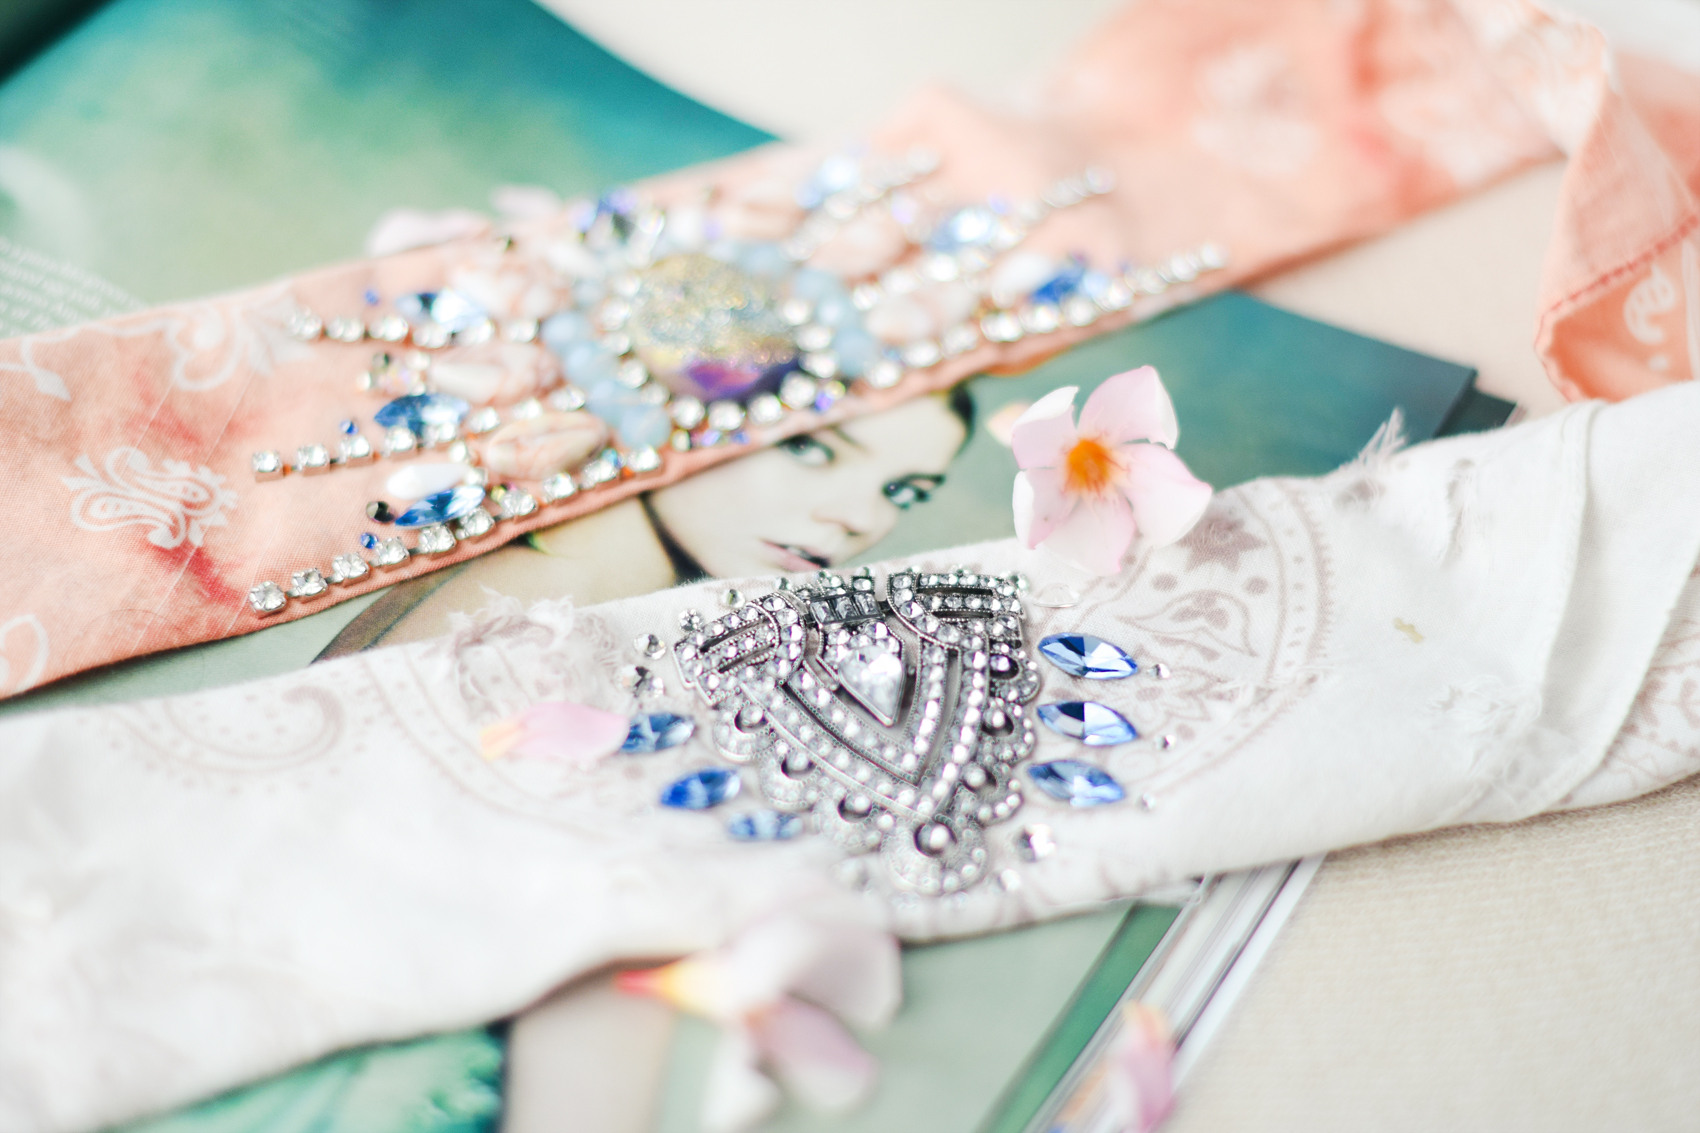 Seafoam Coachella-inspired Handmade Headbands by Quiet Lion Creations